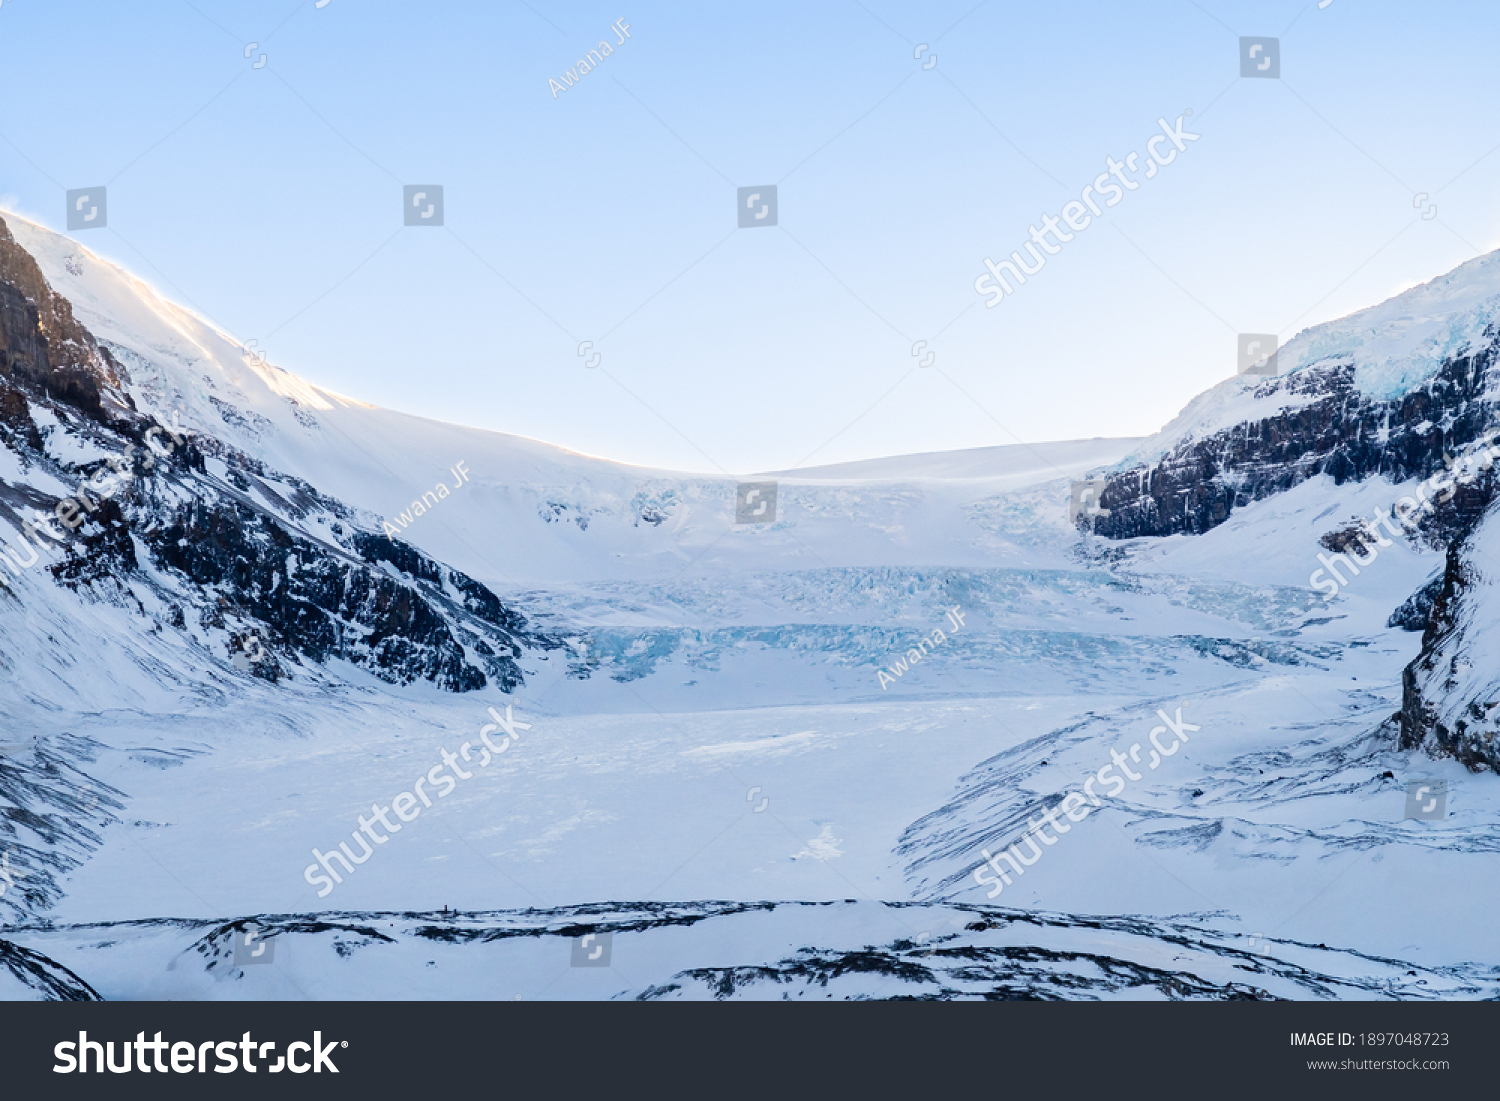 stock-photo-winter-view-of-the-athabasca